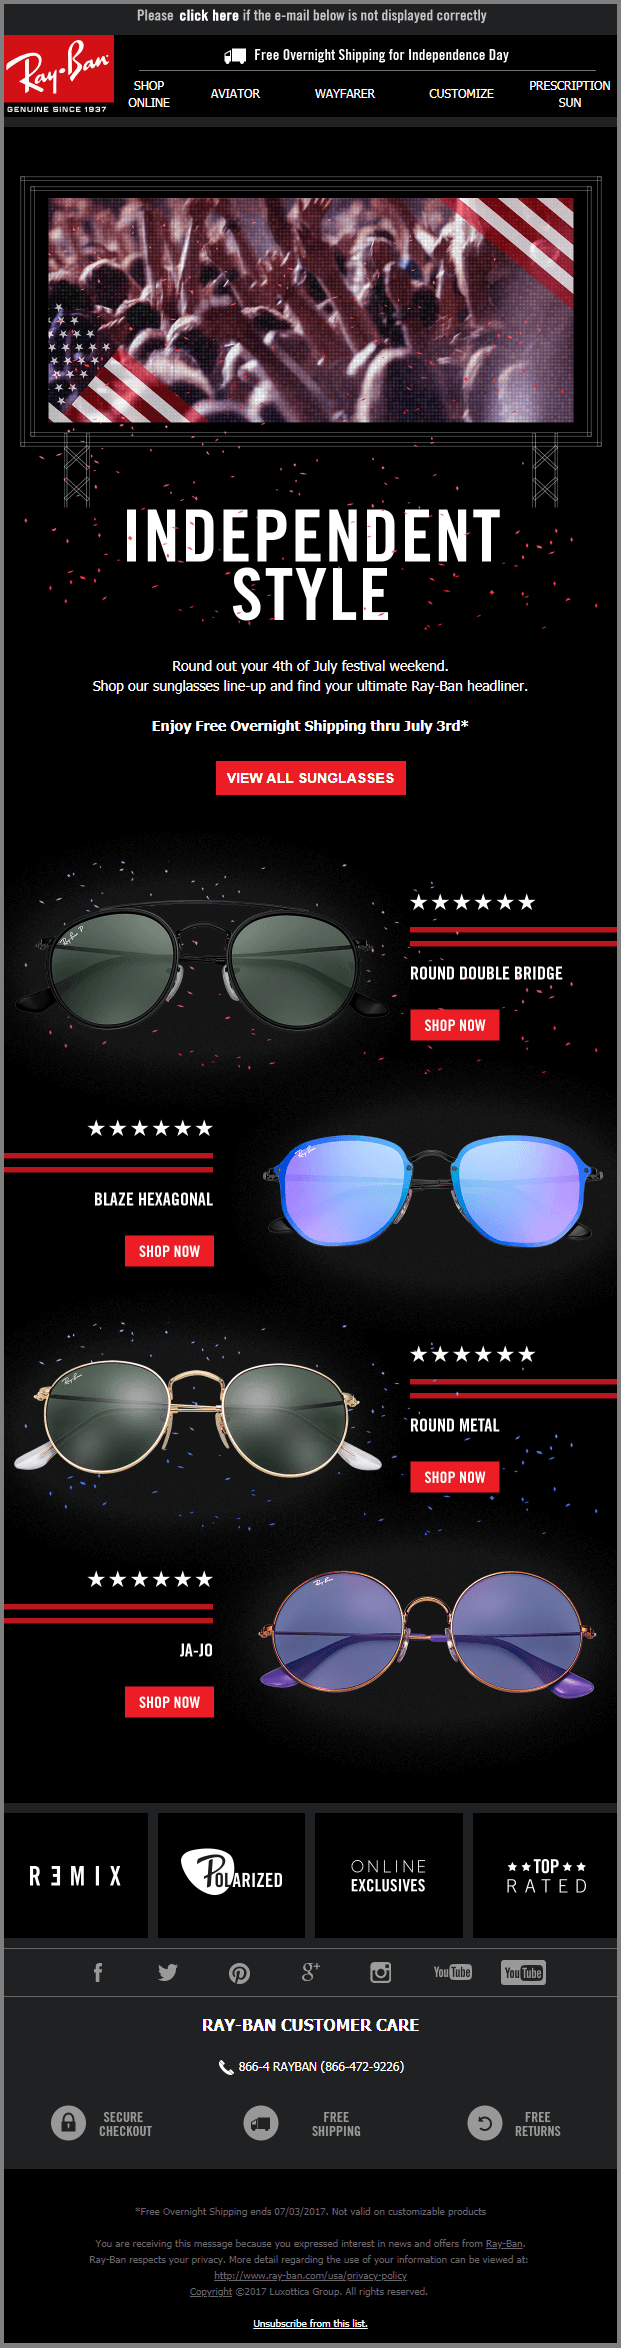 4th of July email templates Ray-Ban_Email